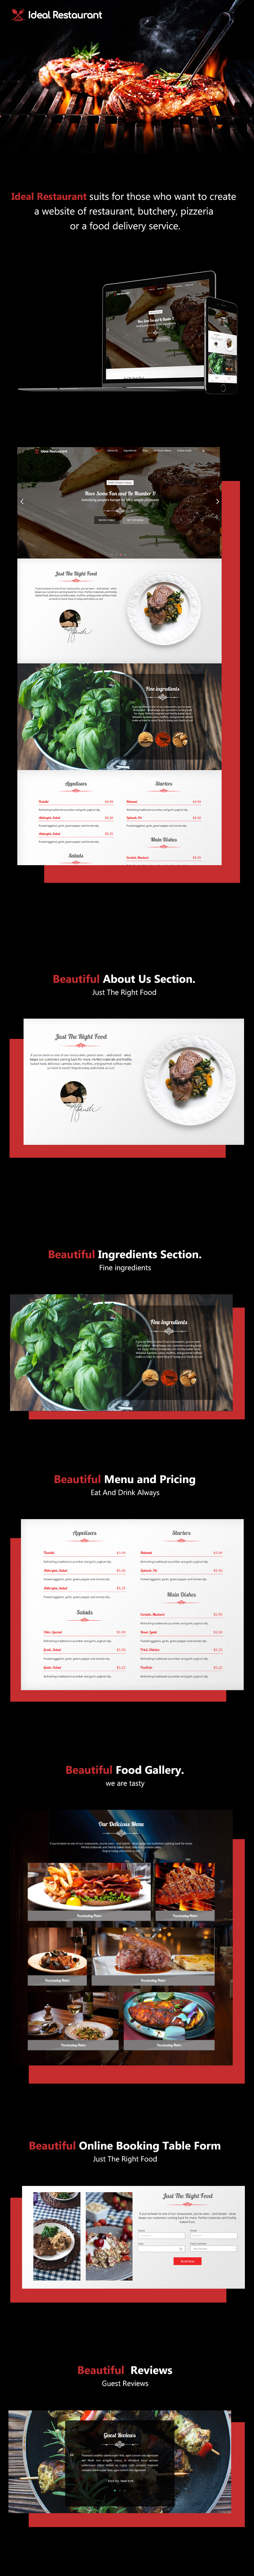 Ideal Restaurant – Single Page Responsive Theme theme